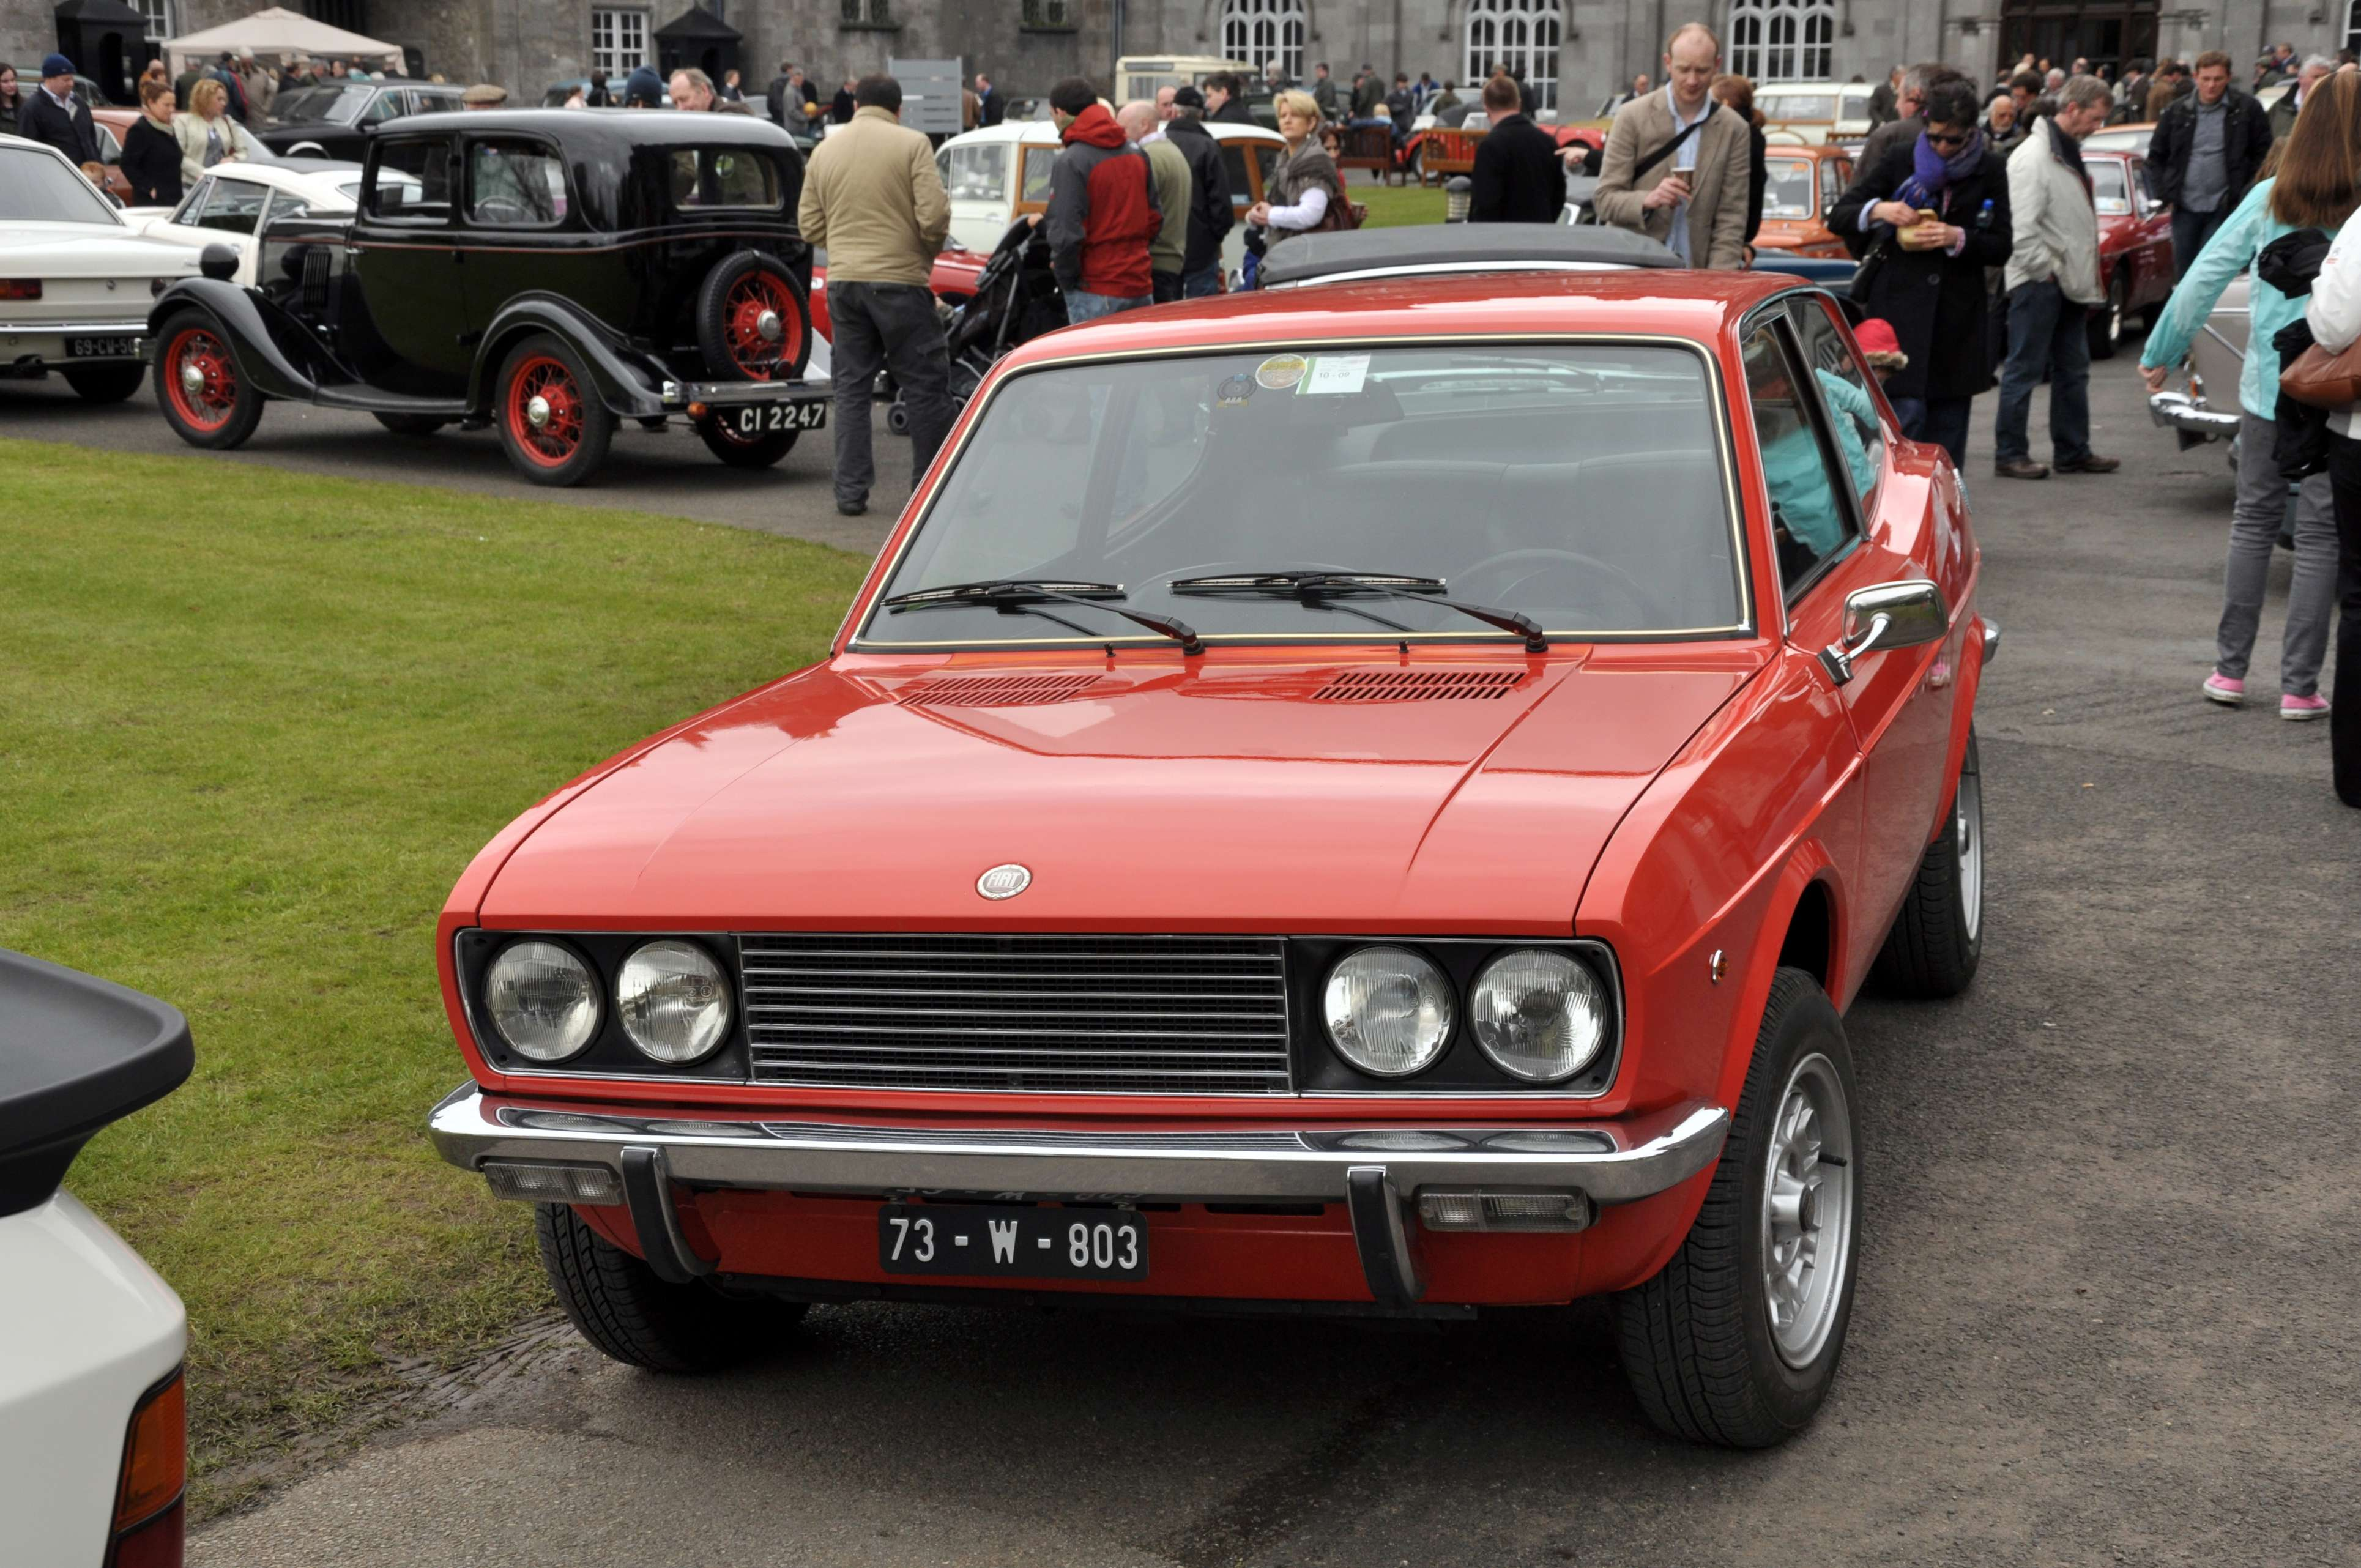 Fiat 128 coupe #9765080